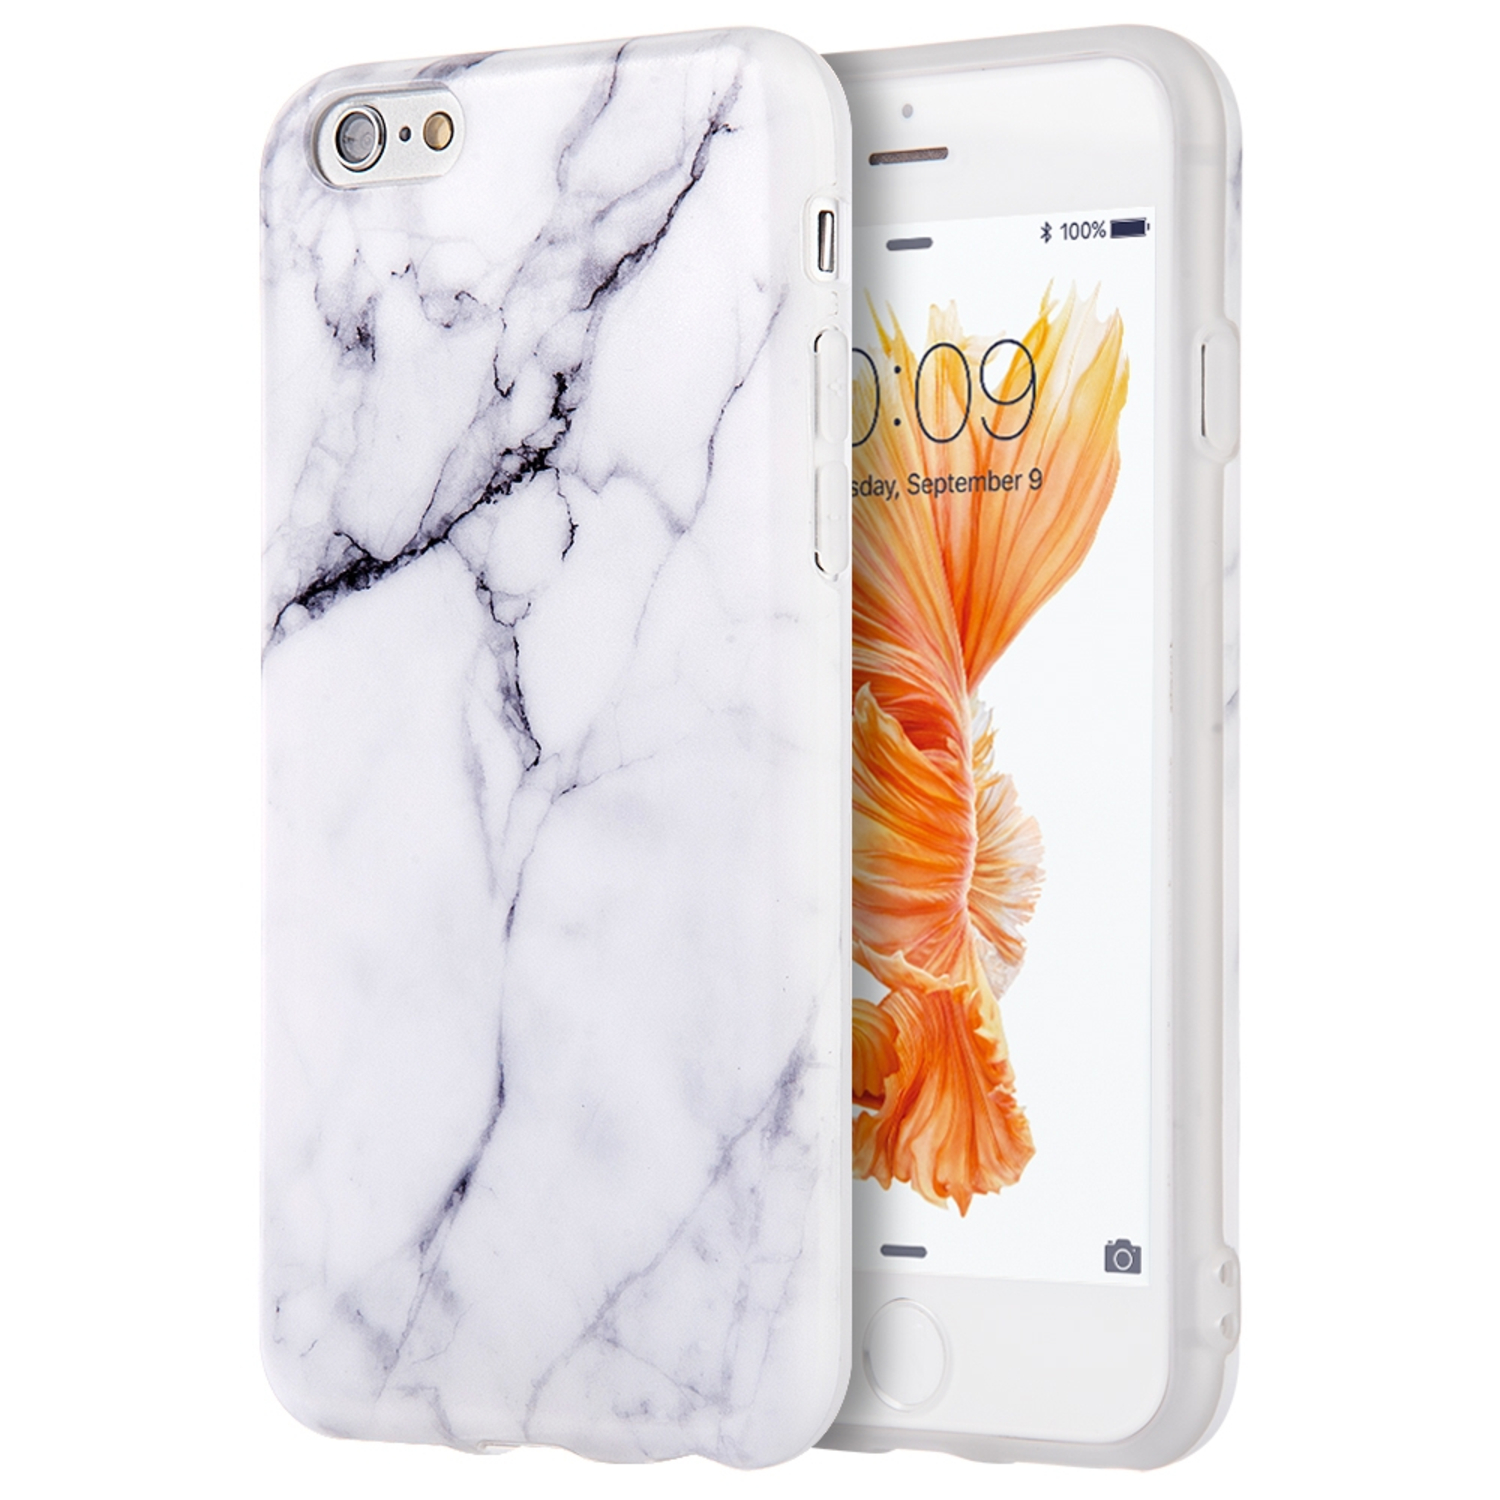 iPhone 6s Plus, iPhone 6 Plus Case, by Insten Marble TPU Rubber Candy Skin Case Cover For Apple iPhone 6s Plus / 6 Plus